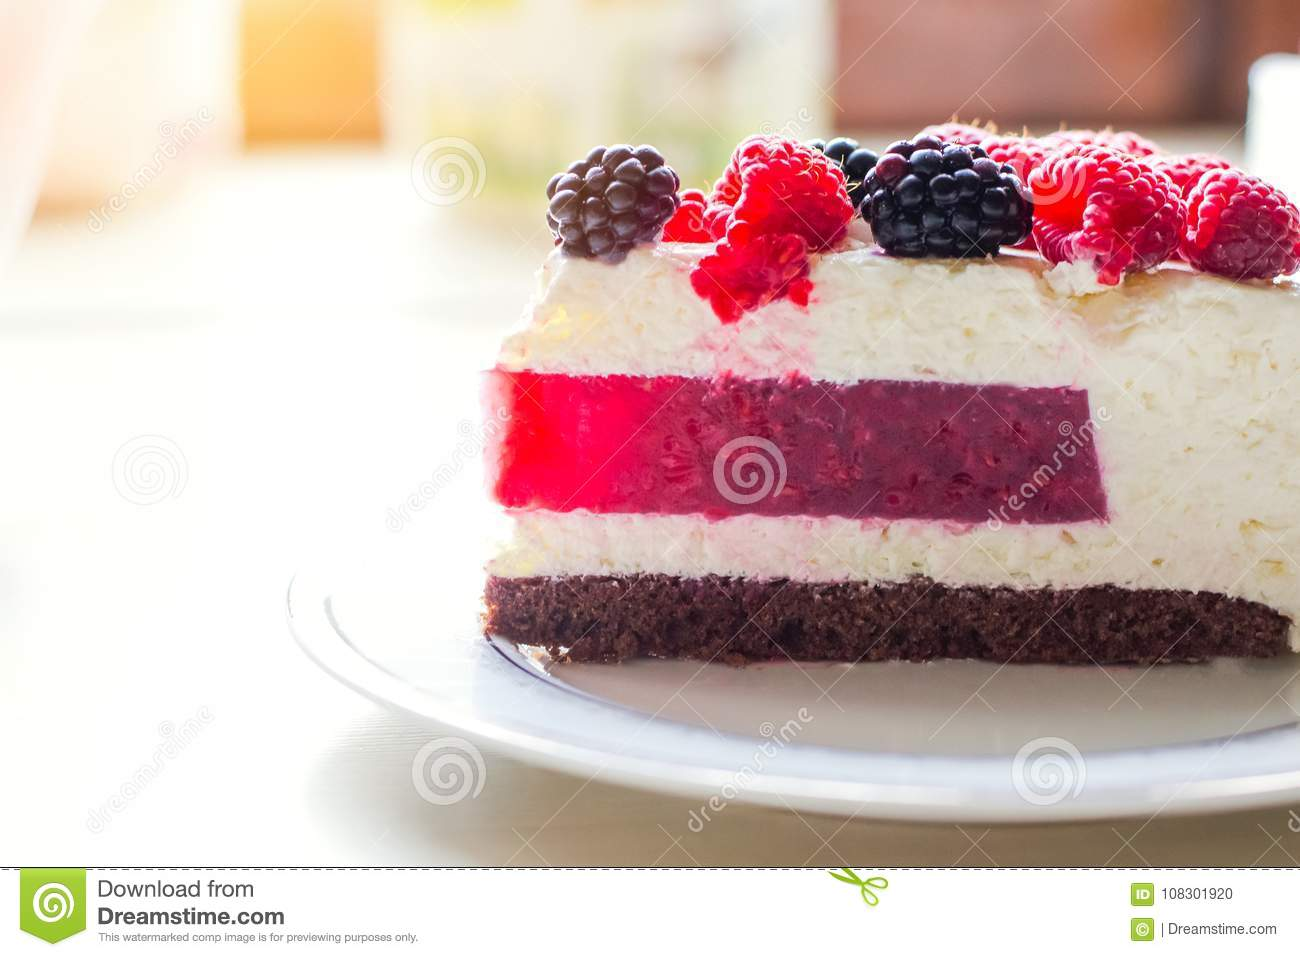 Home Mousse Cake With Cottage Cheese And Jello With Raspberries And